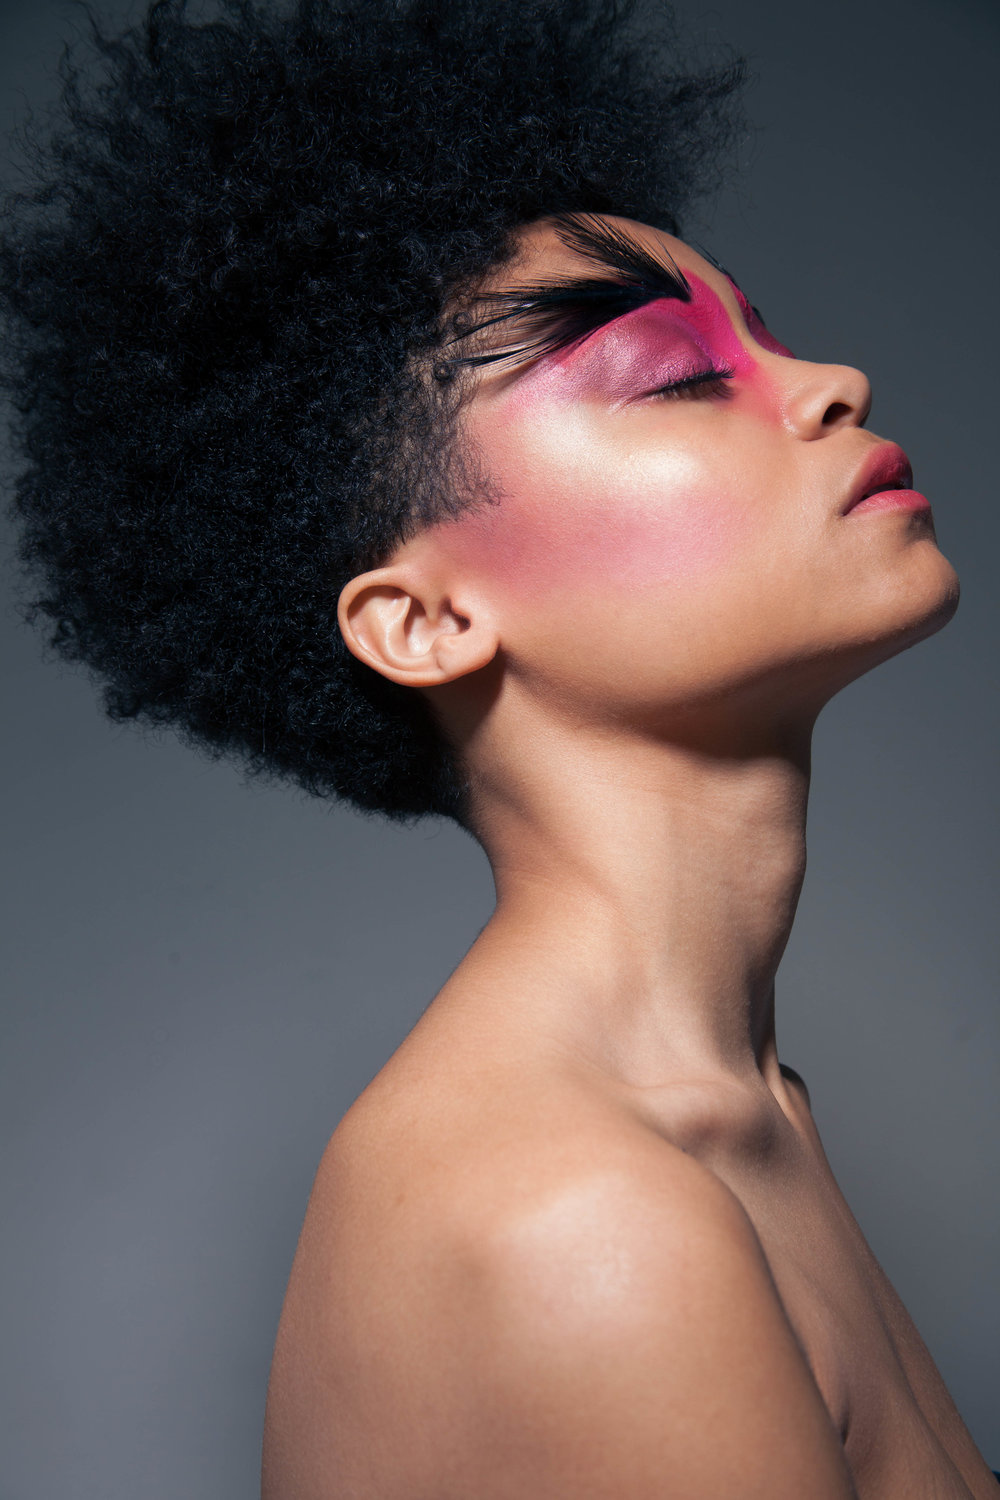 My 2016 Personal favorite featuring model Kayana Howard with makeup by Emma Bahi